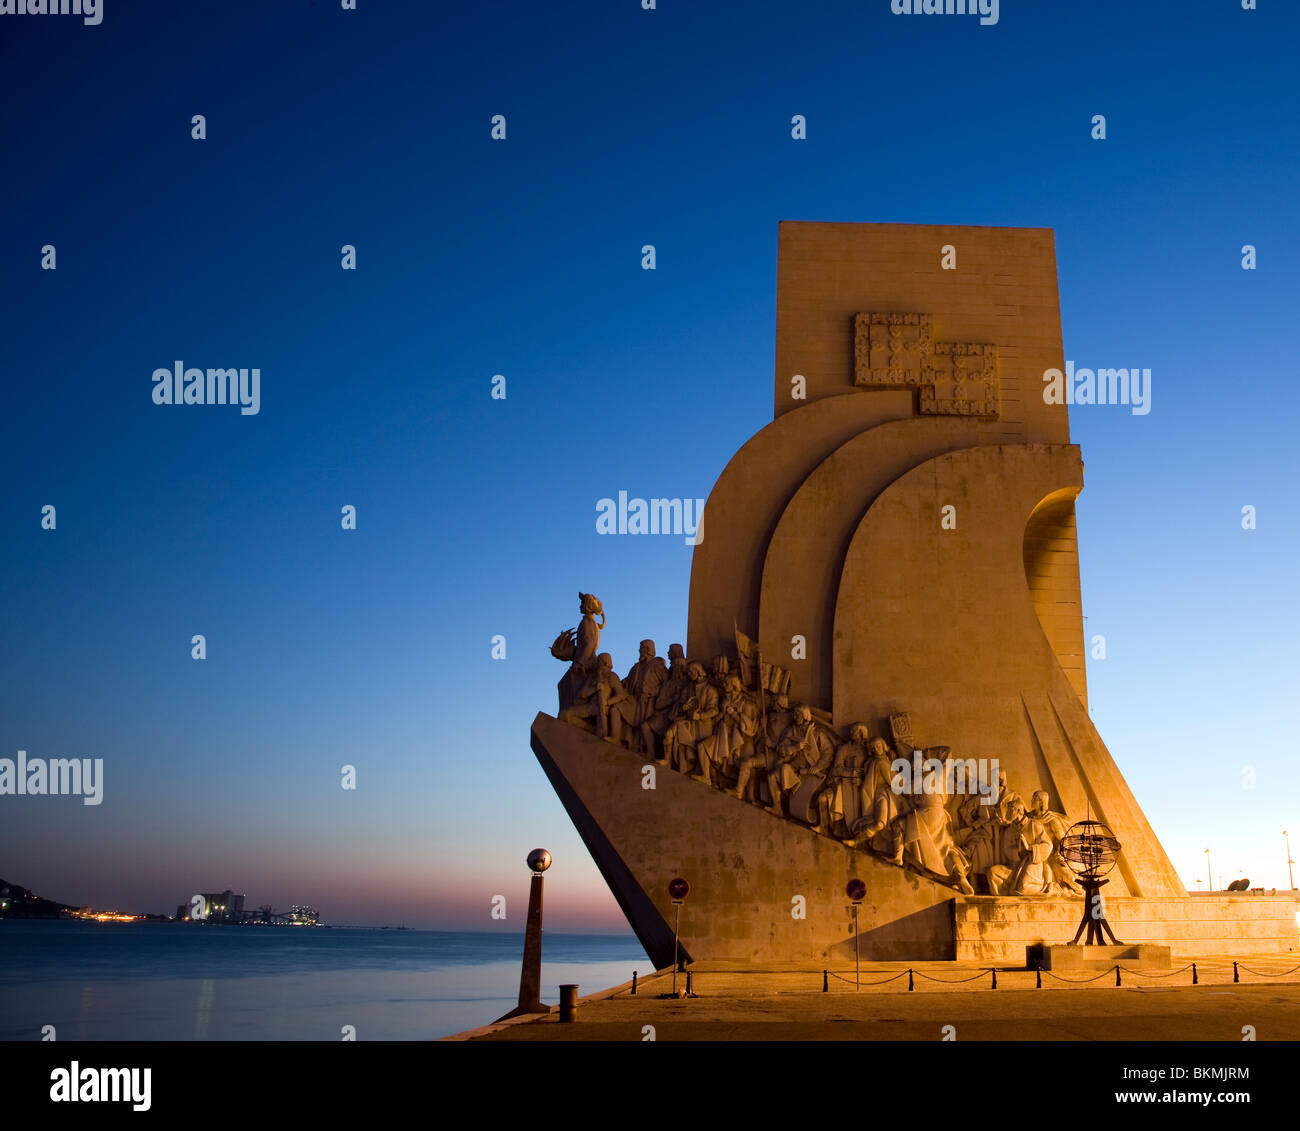 Monument to the Discoveries at twilight, Lisbon, Portugal Stock Photo